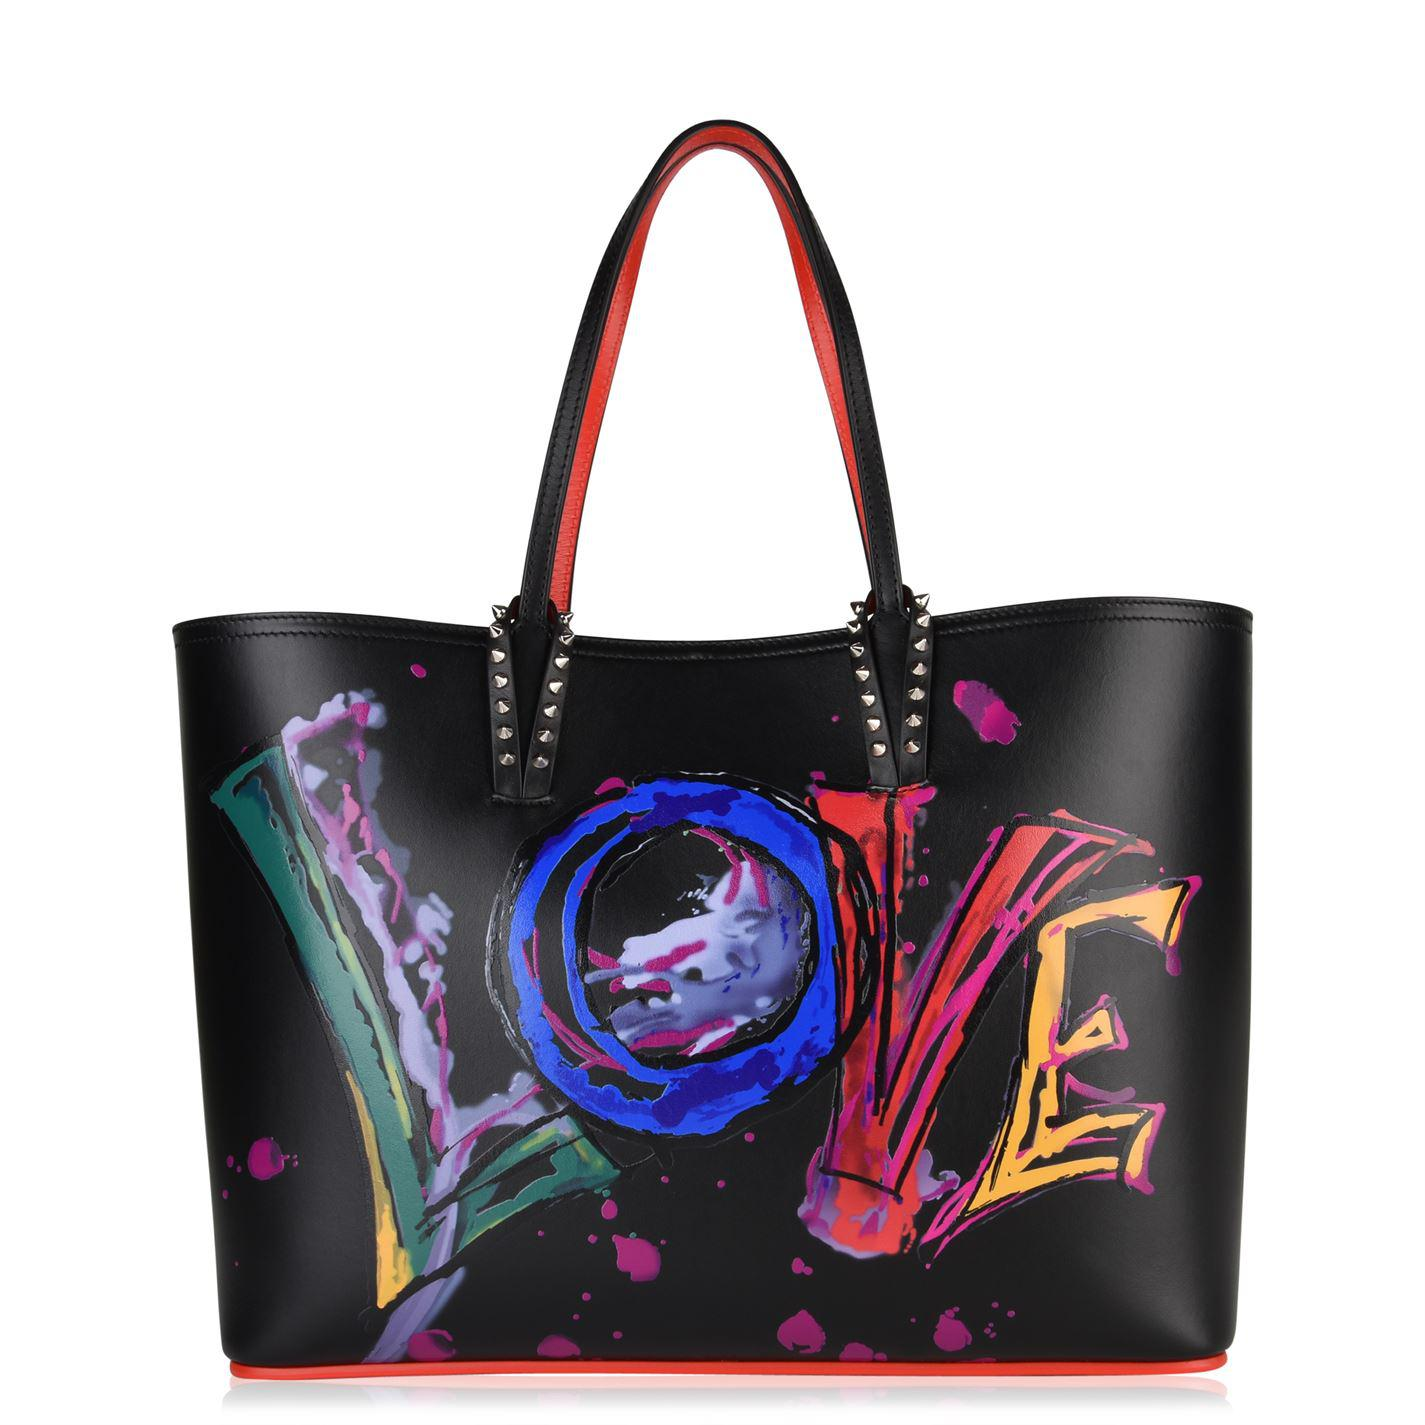 3e272514f10 Lyst - Christian Louboutin Cabata Love Tote Bag in Black - Save 50%